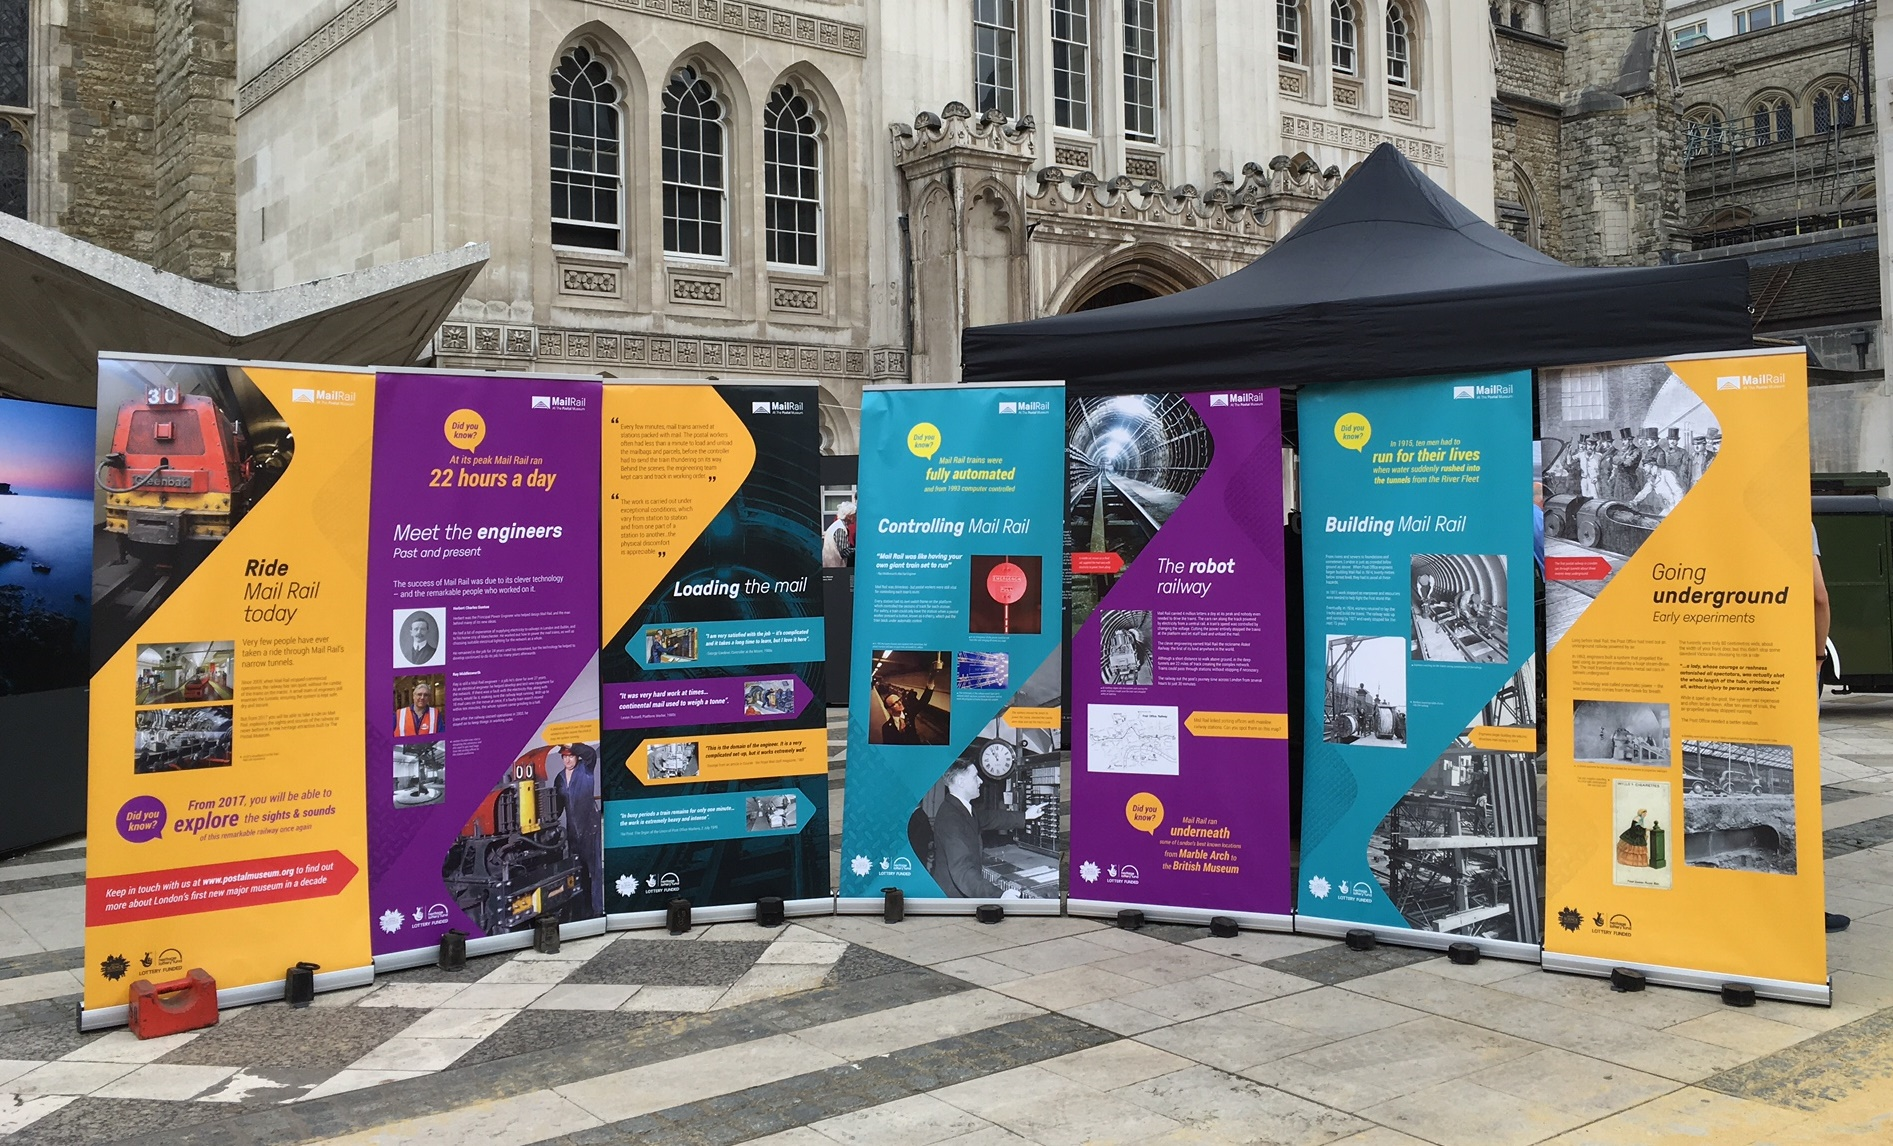 banners from the Mail Rail exhibition in the Guildhall yard